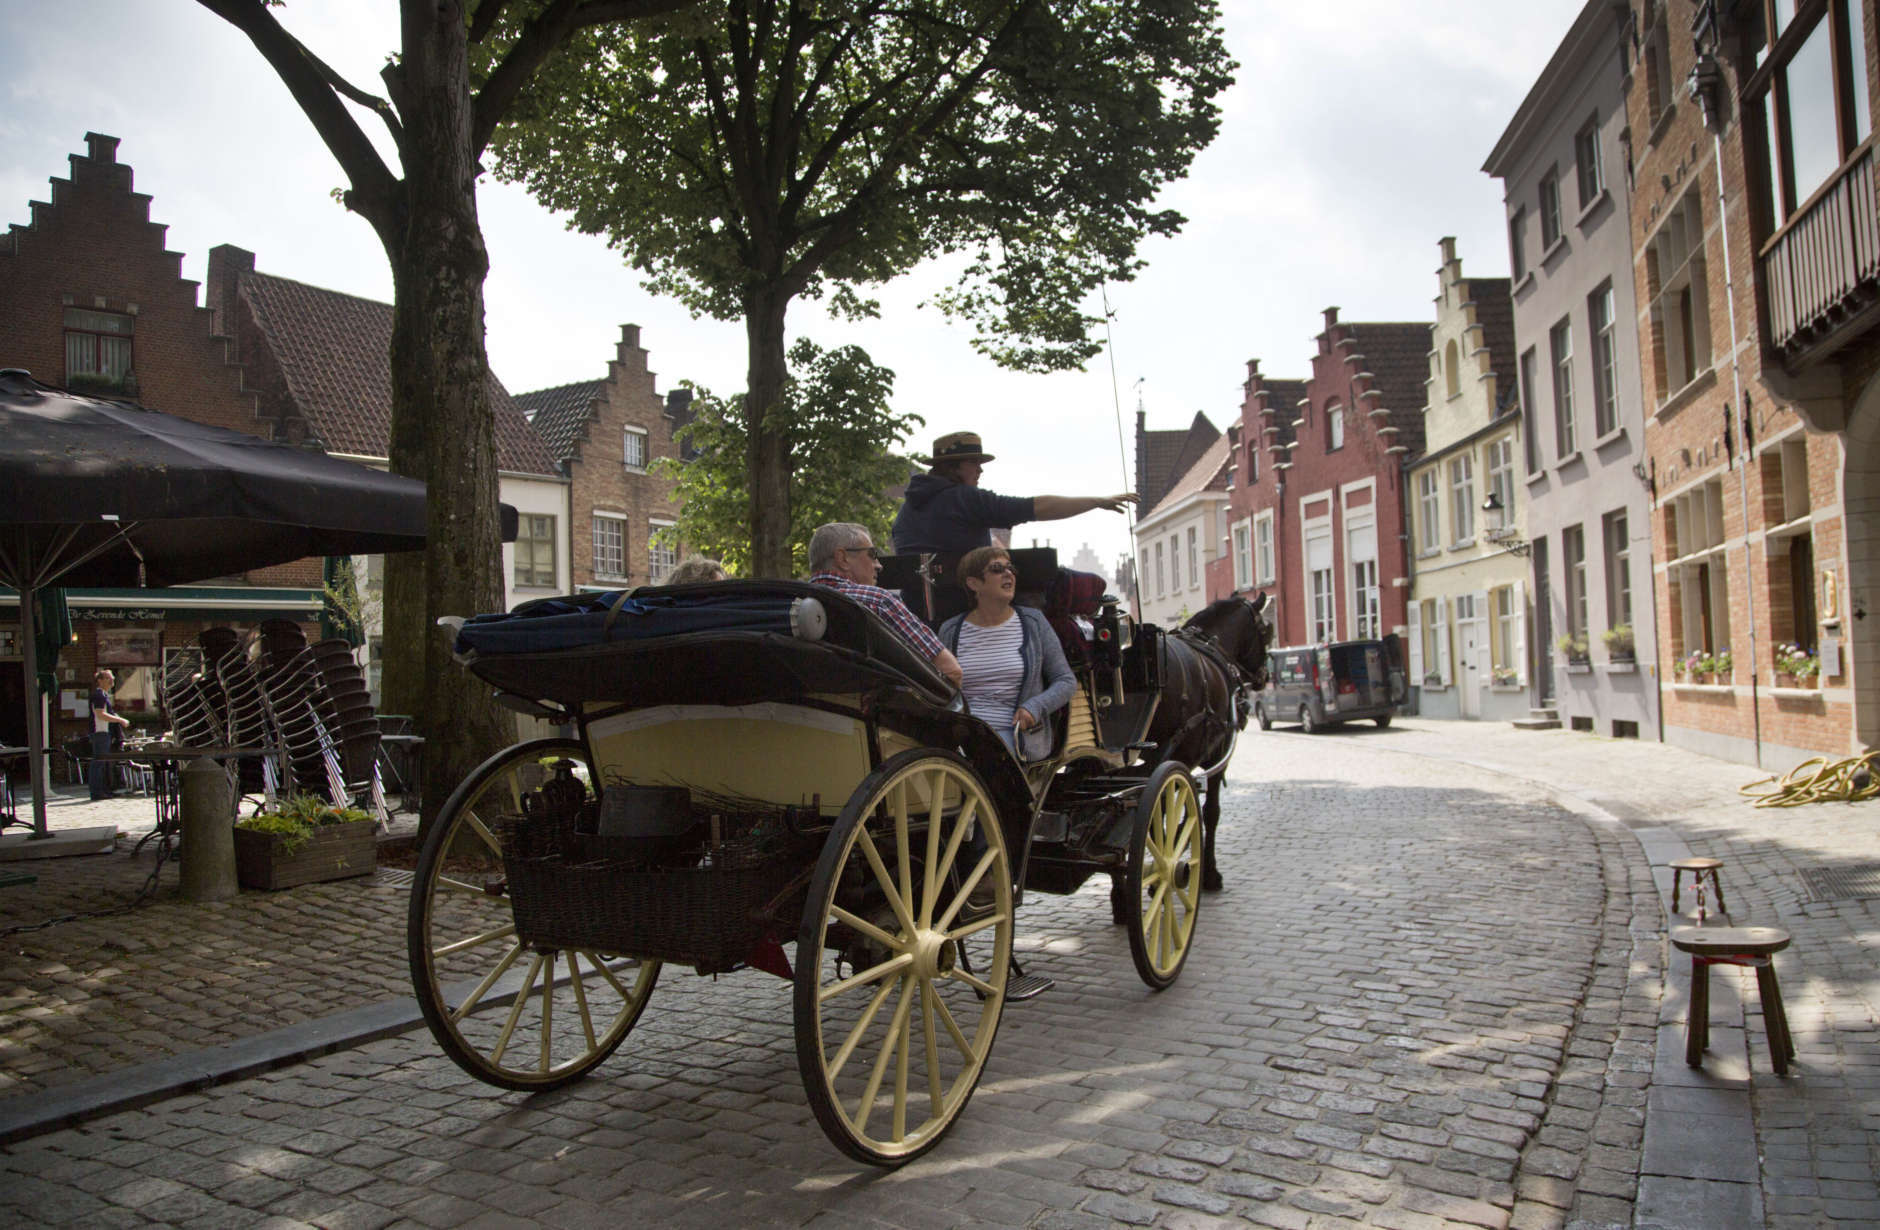 Tourists ride in a horse drawn carriage past the Halve Maan Brewery in Bruges, Belgium on Thursday, May 26, 2016. The brewery has recently created a beer pipeline which will ship beer straight from the brewery to the bottling plant, two kilometers away, through underground pipes running between the two sources. (AP Photo/Virginia Mayo)